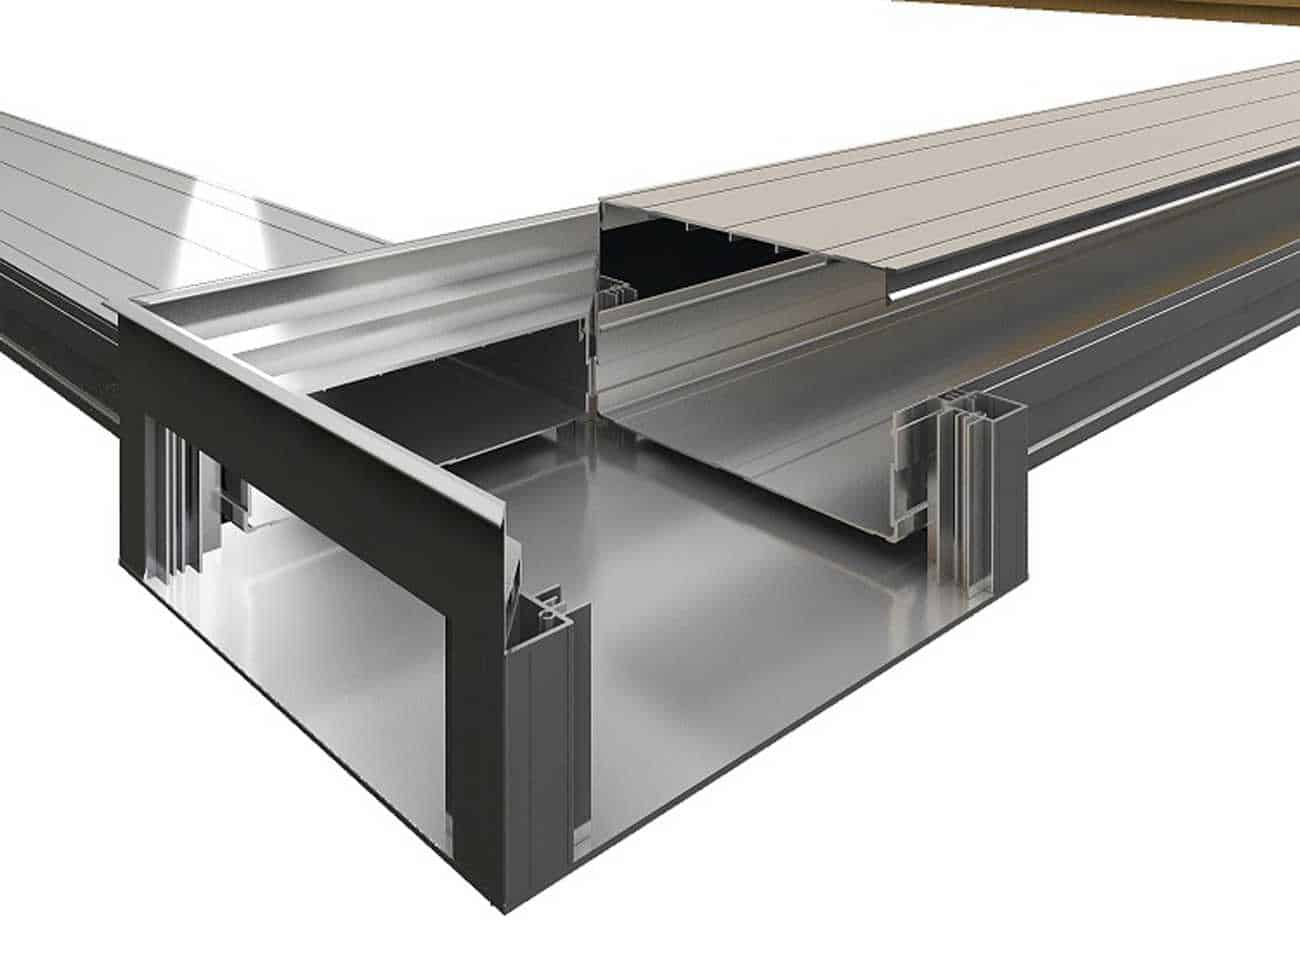 IQUBX floor junction box is made of three extruded aluminium profiles and can be fabricated or modified on site